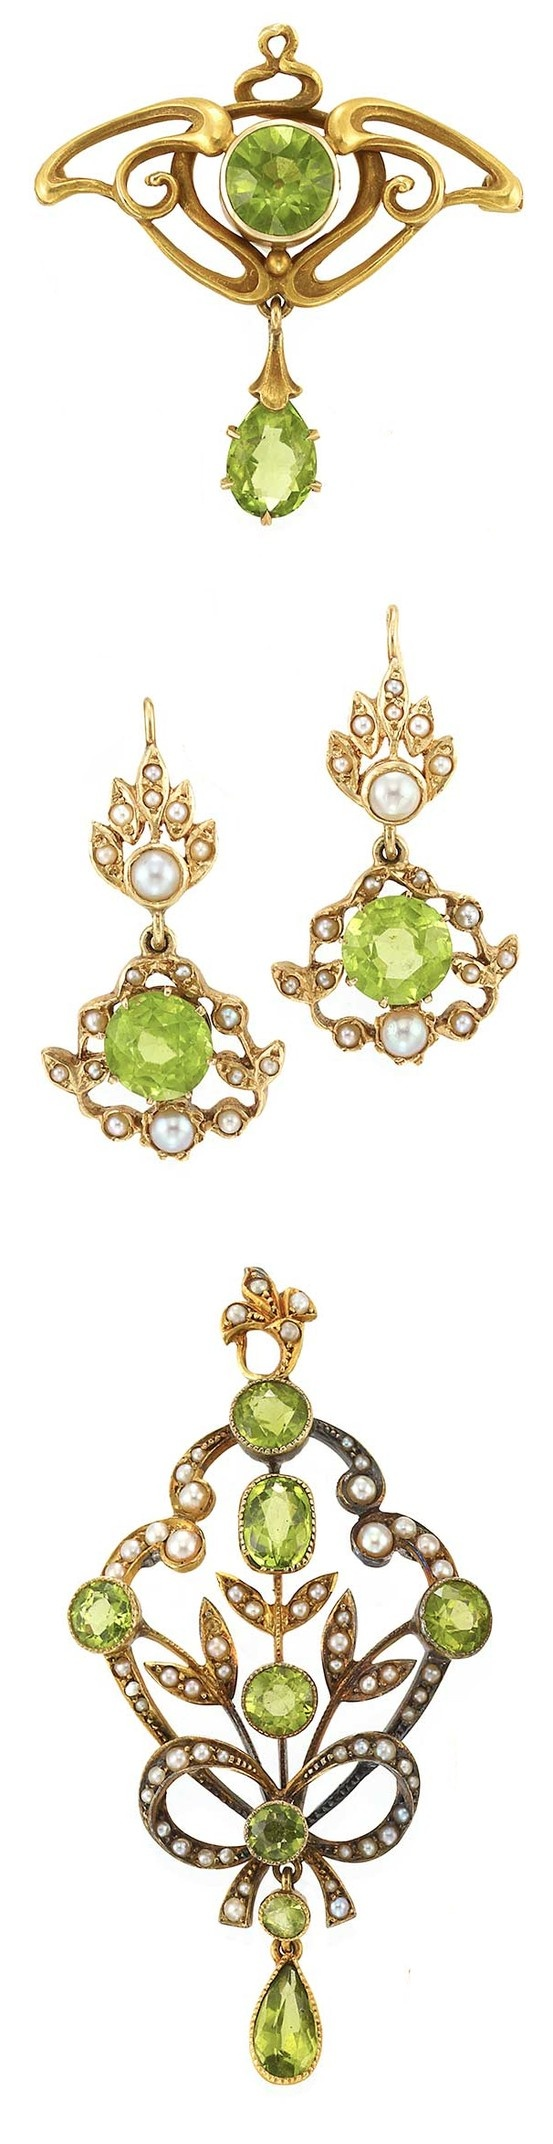 Art Nouveau Peridot Jewelry Set